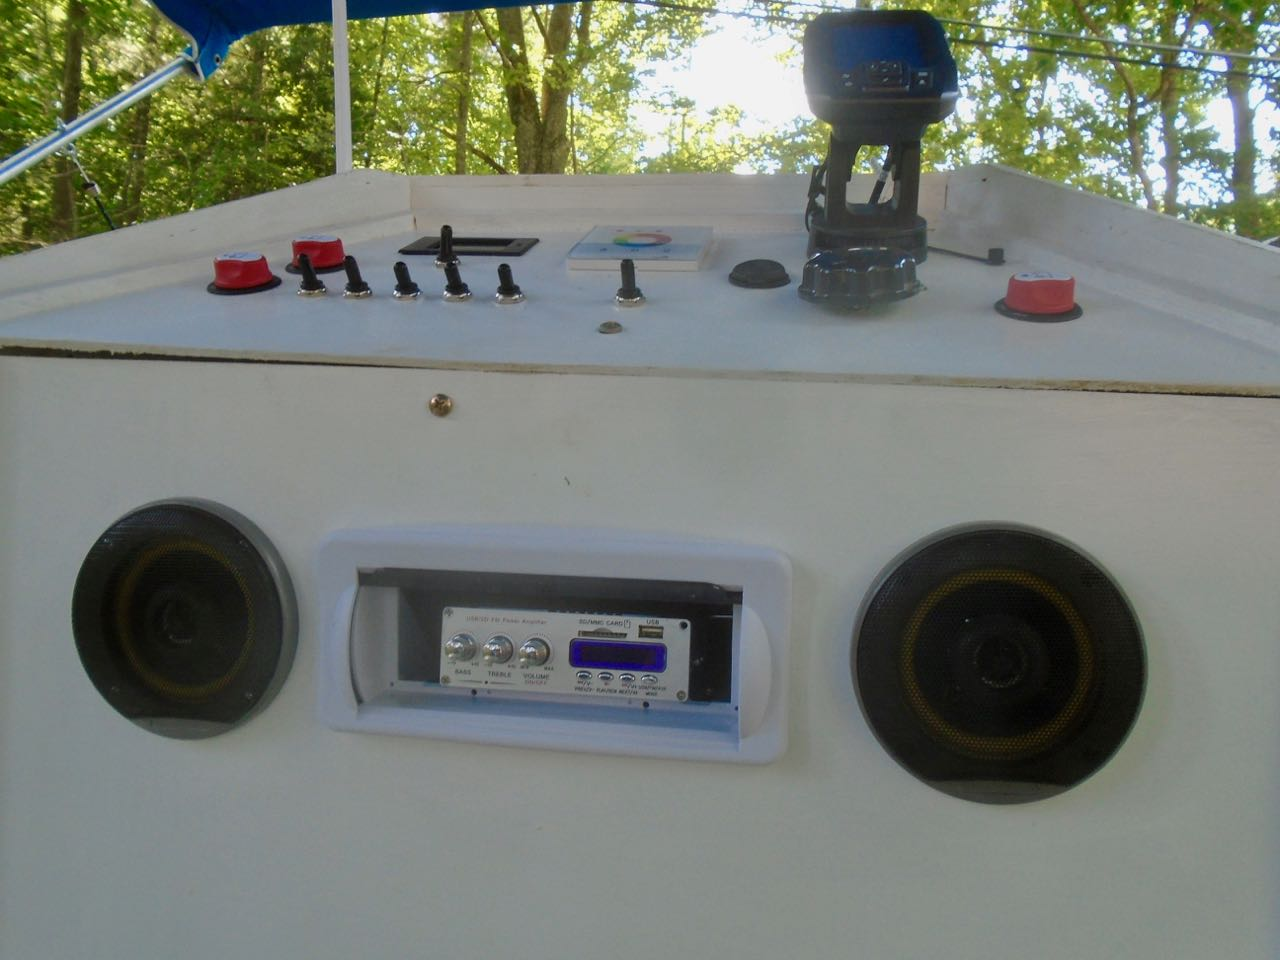 Picture of A Boat Name and Tunes